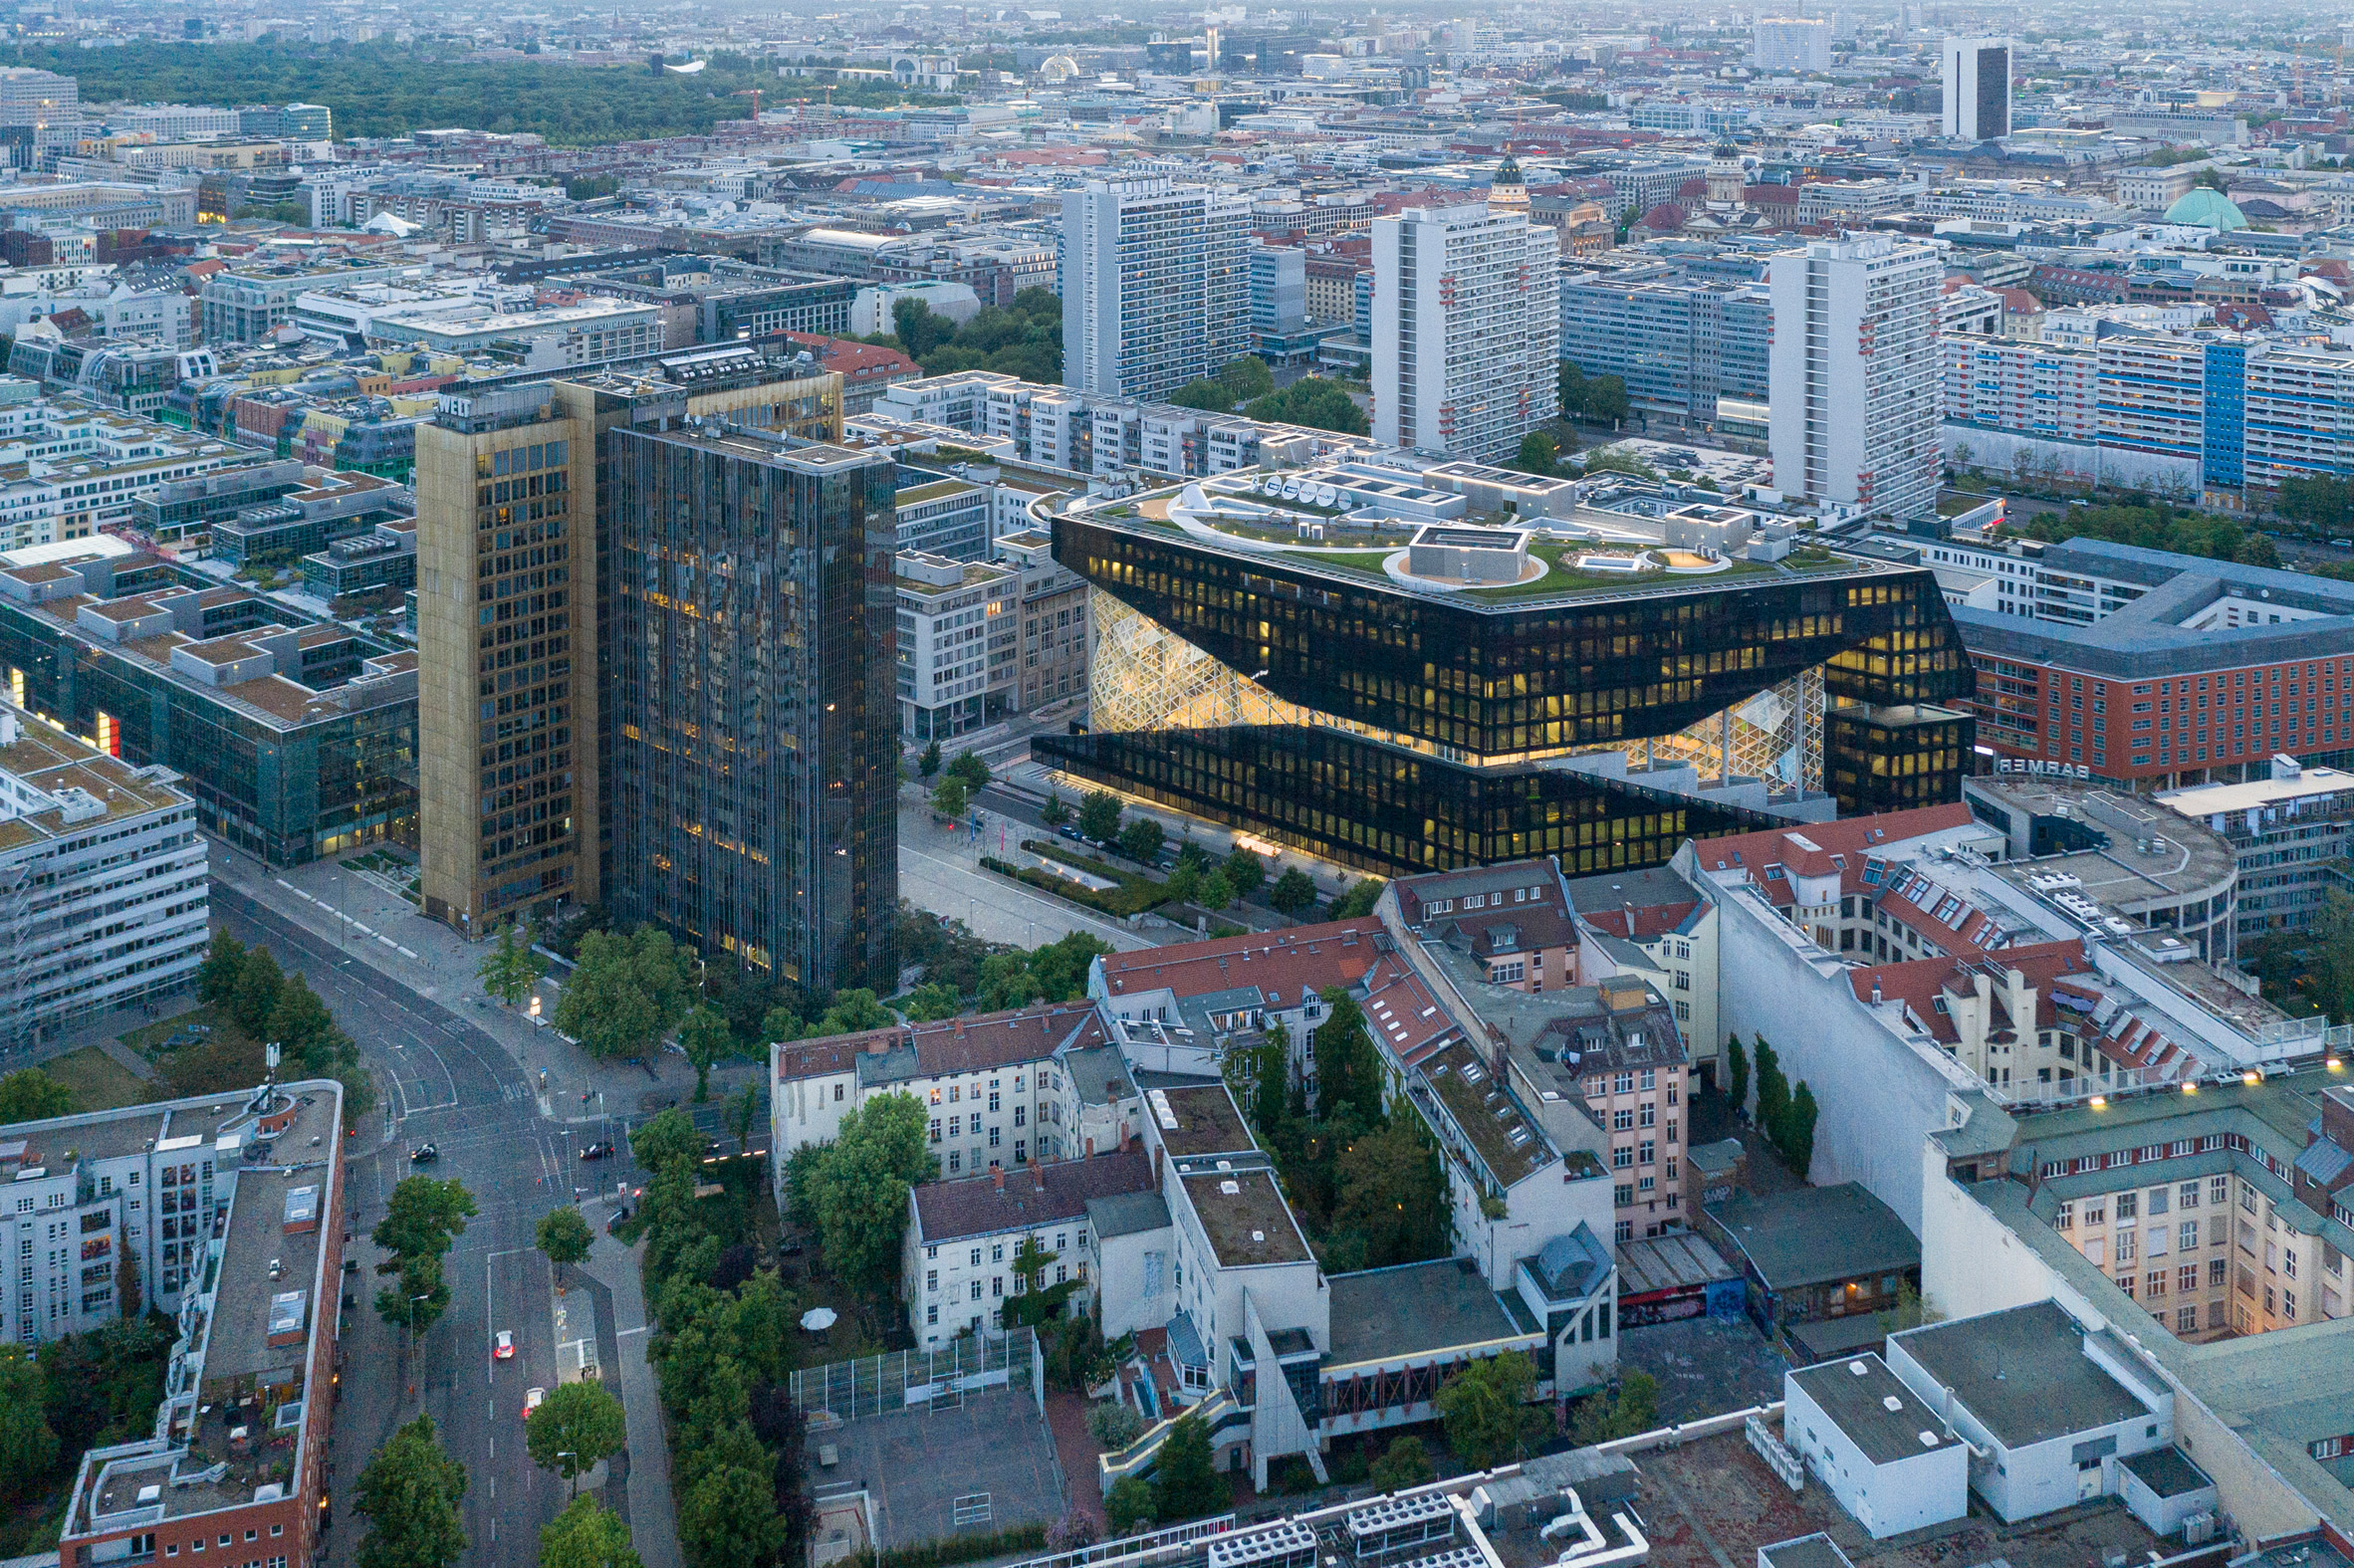 Aerial view of Axel Springer building by OMA in Berlin, Germany